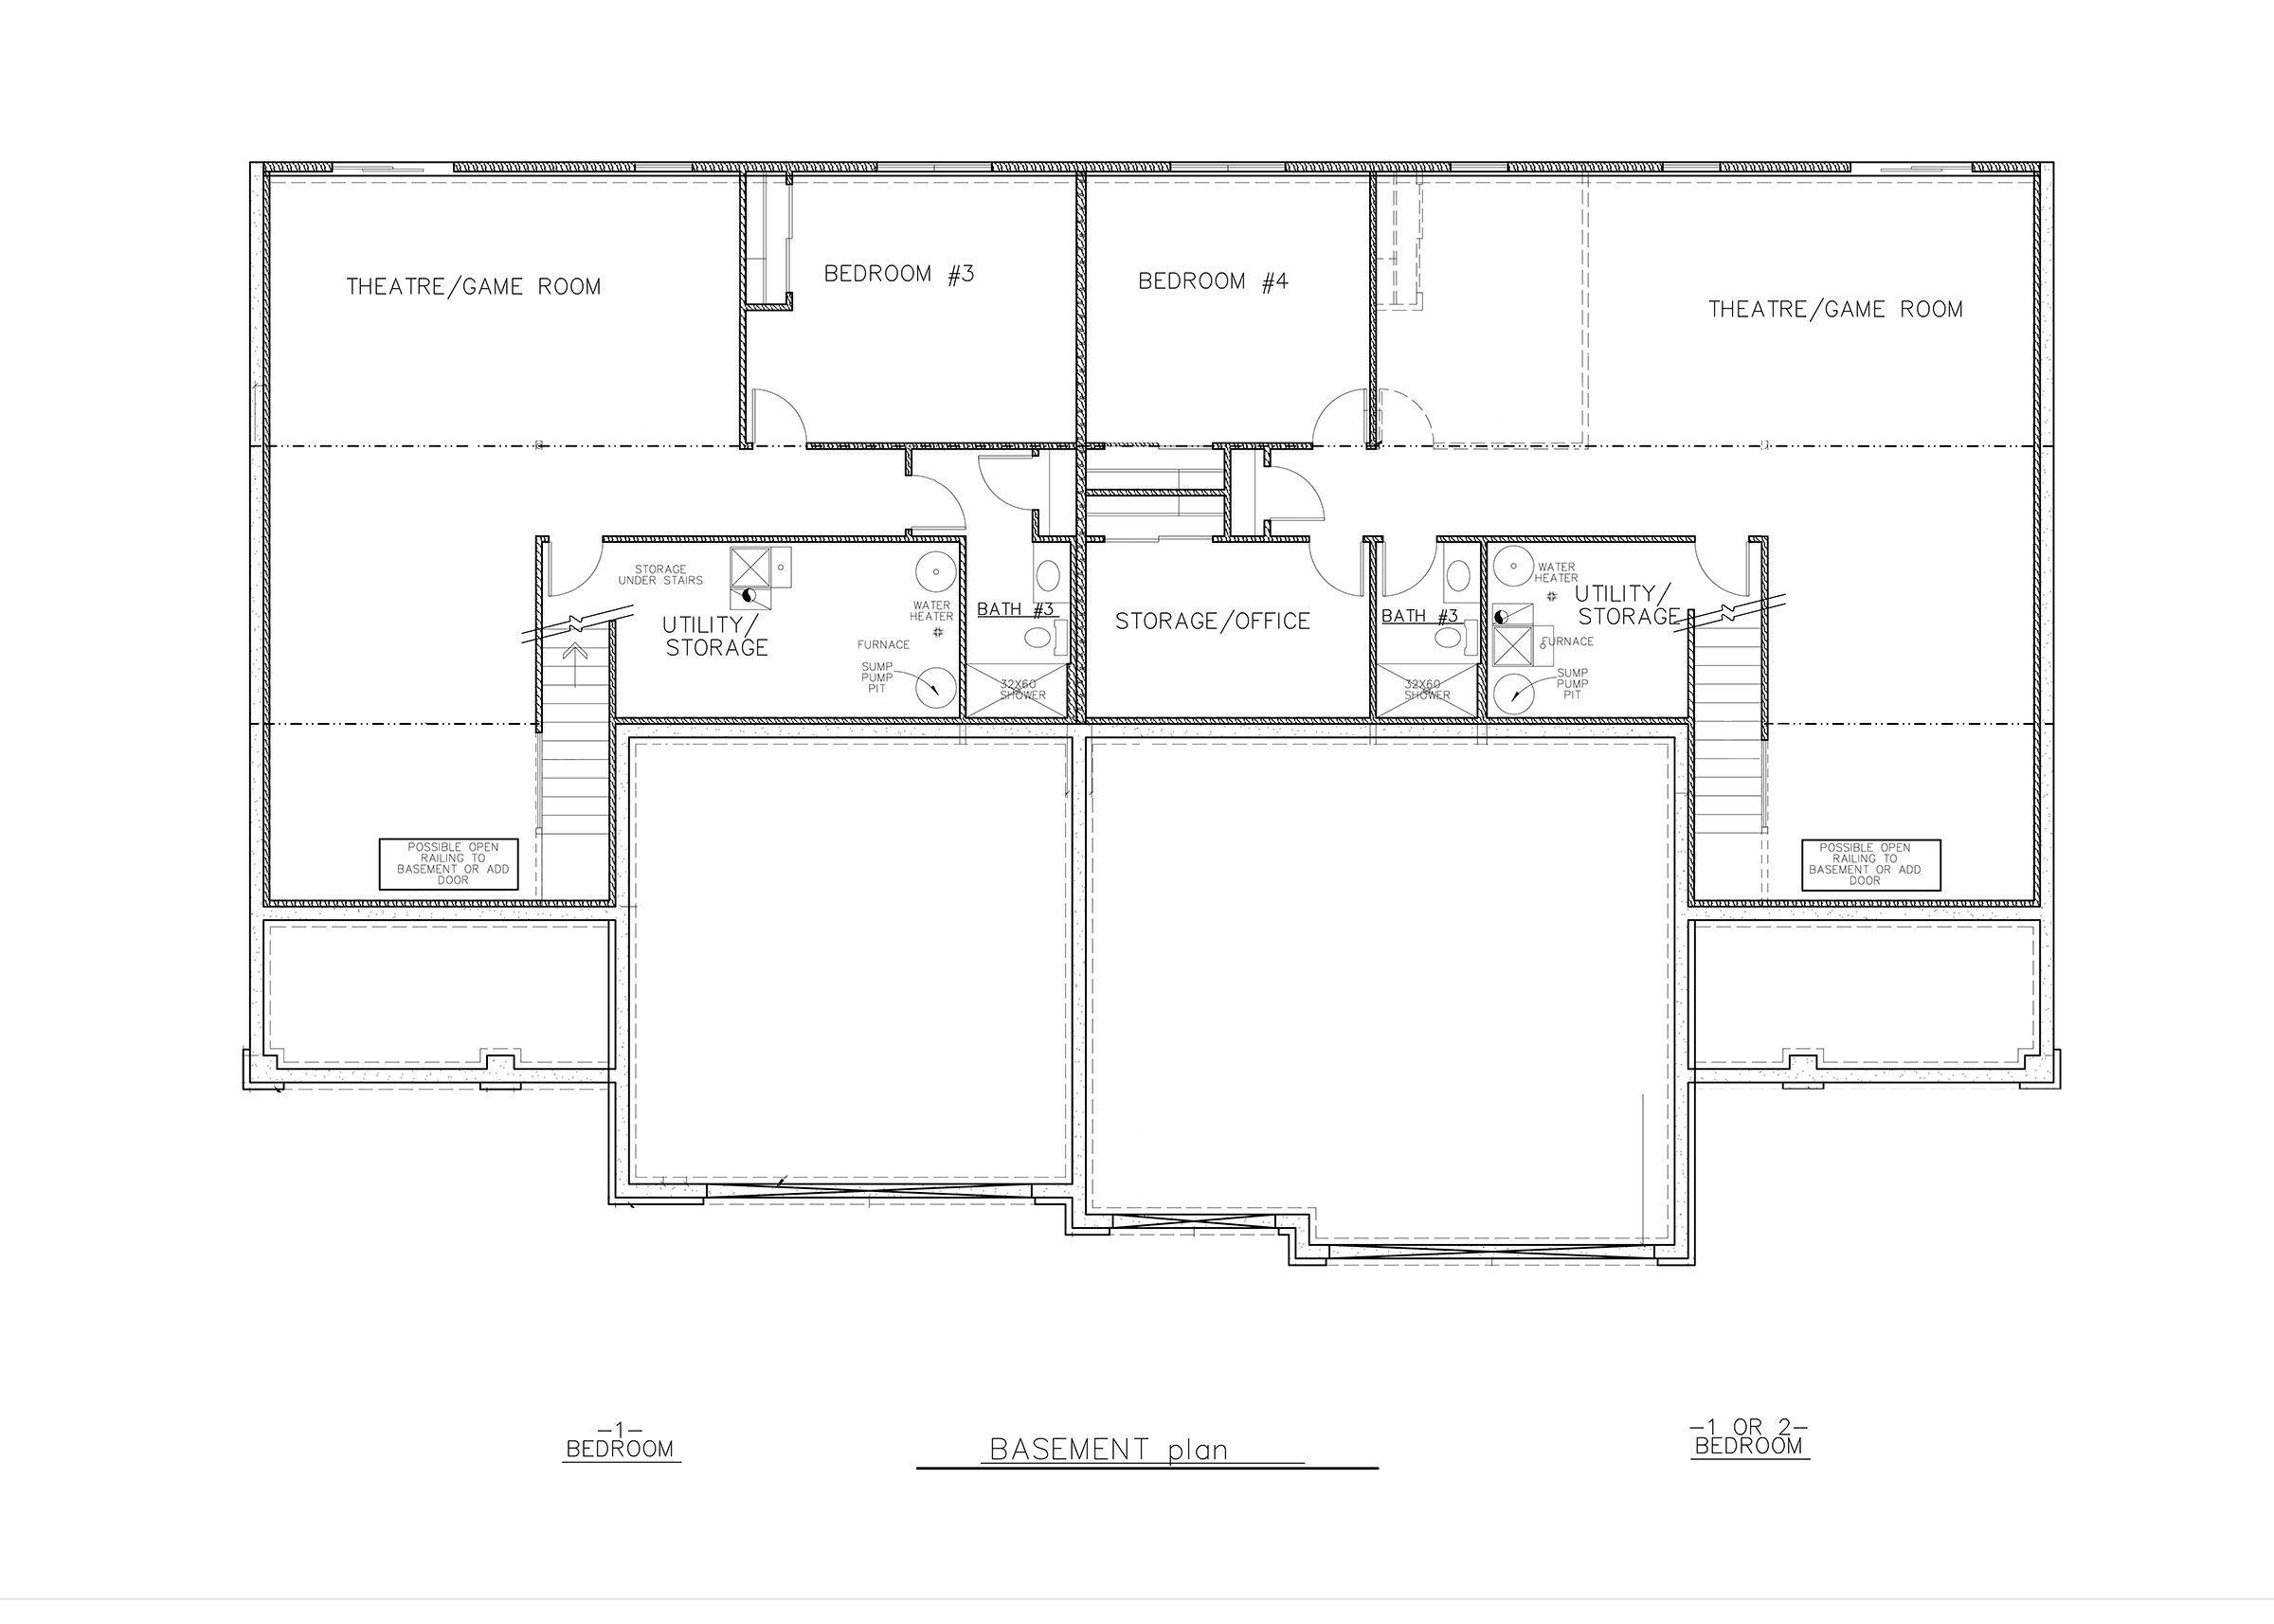 Basement Rendering